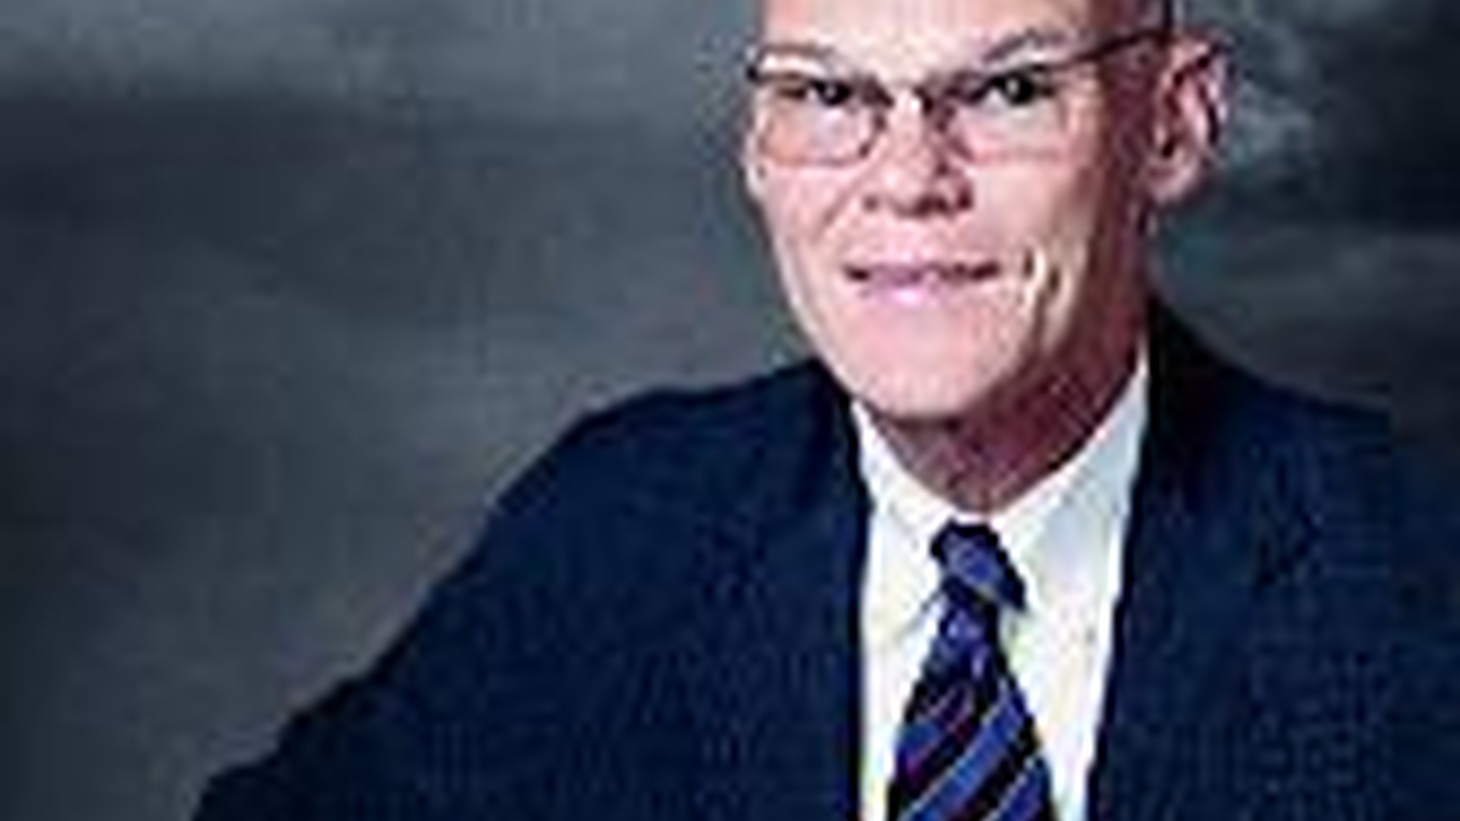 Ragin' Cajun James Carville comes to Hollywood to produce his first movie.